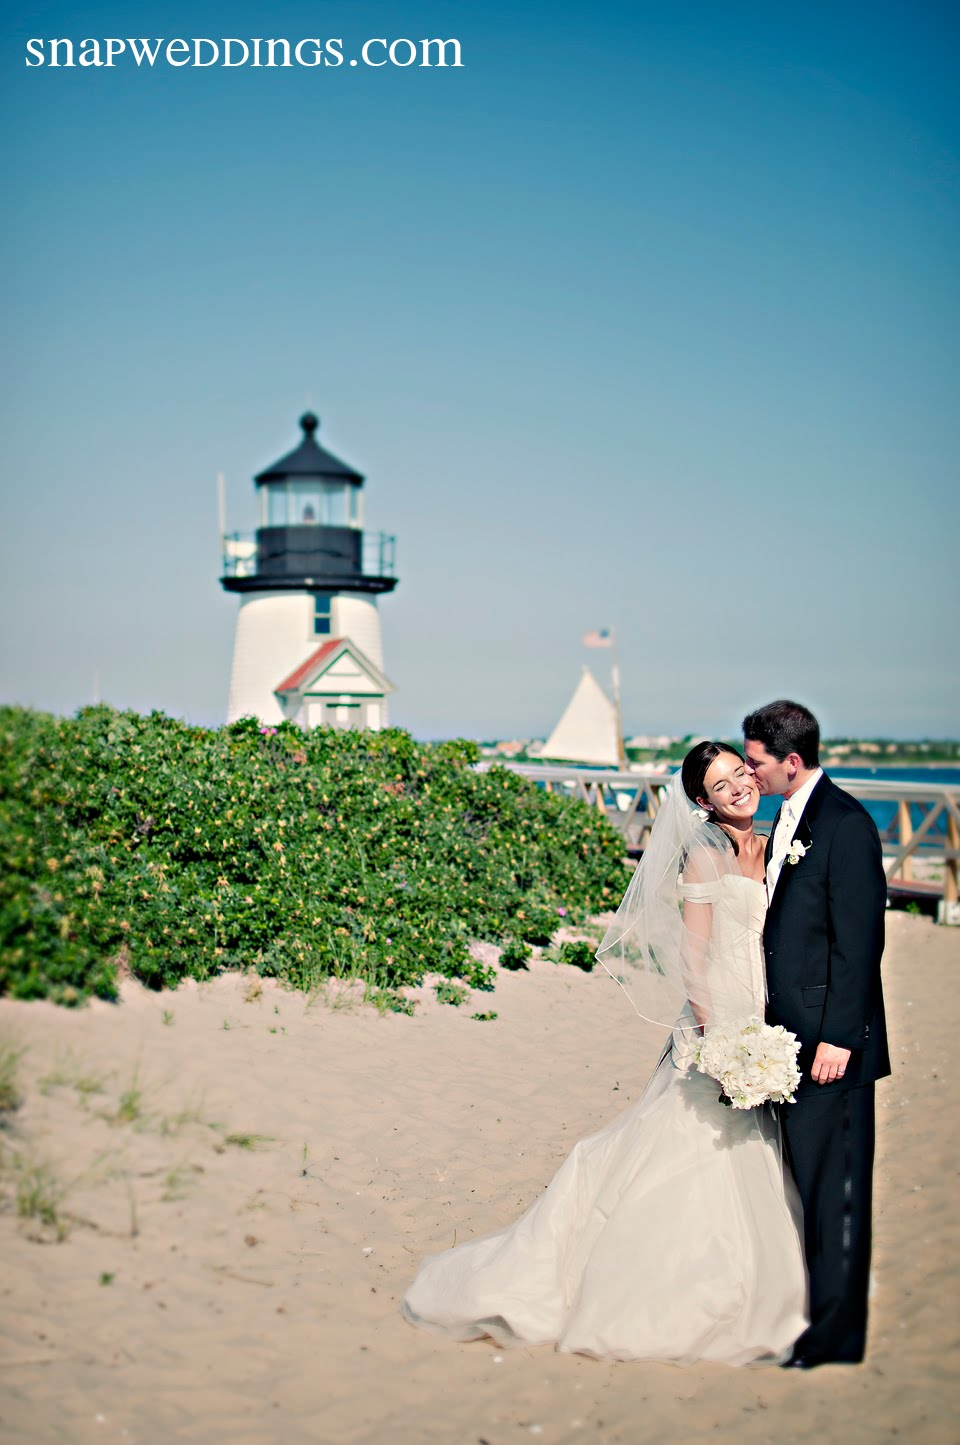 Erica + Ryan at Sankaty Beach Club on Nantucket Island, Part Two